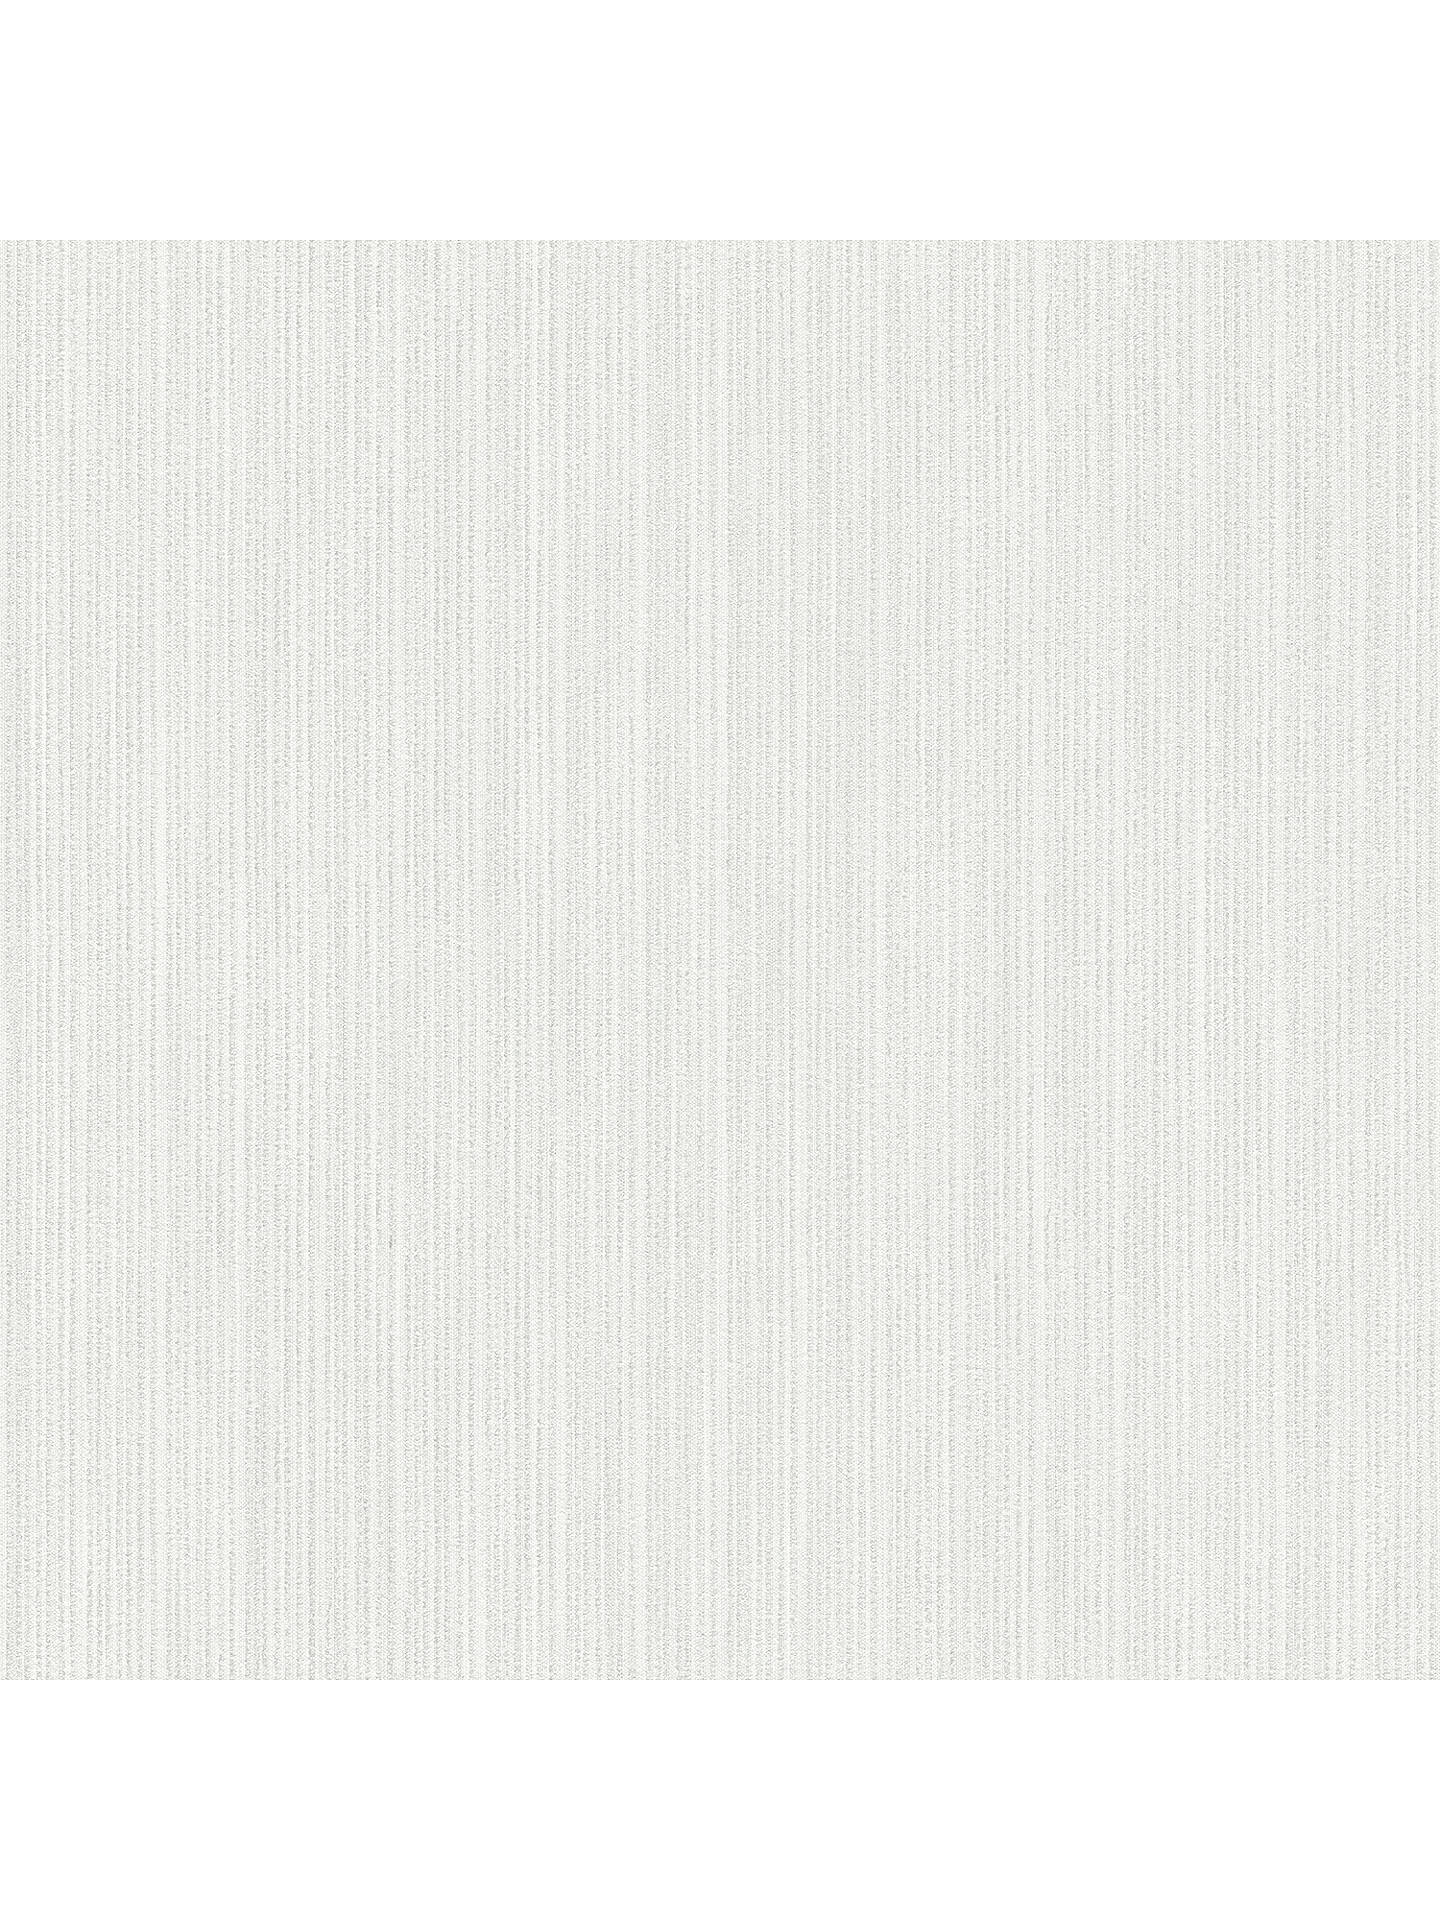 Buy Galerie Textured Stripe Wallpaper, ES31105 Online at johnlewis.com